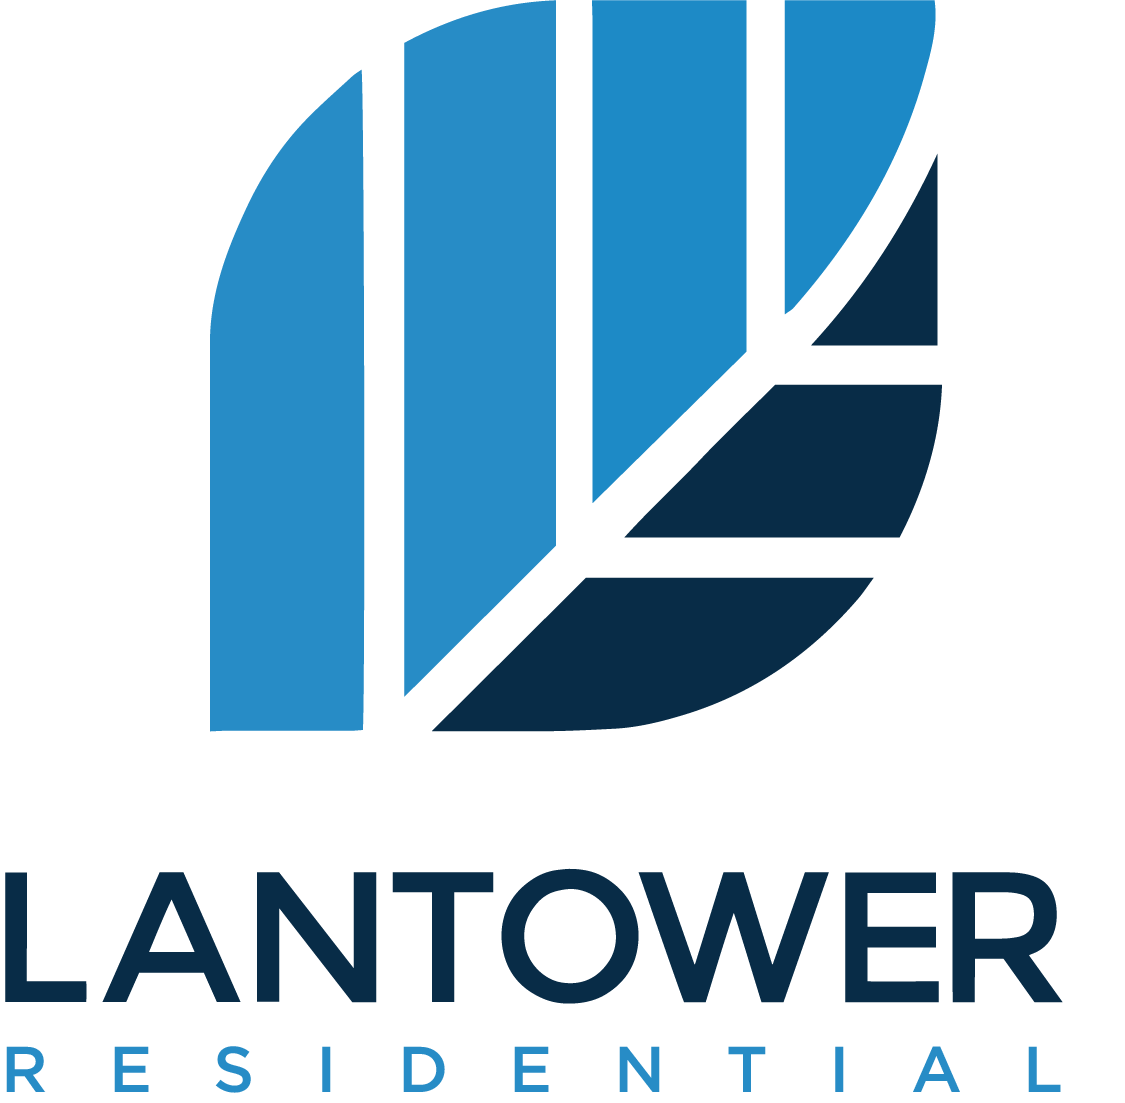 Lantower Corporate